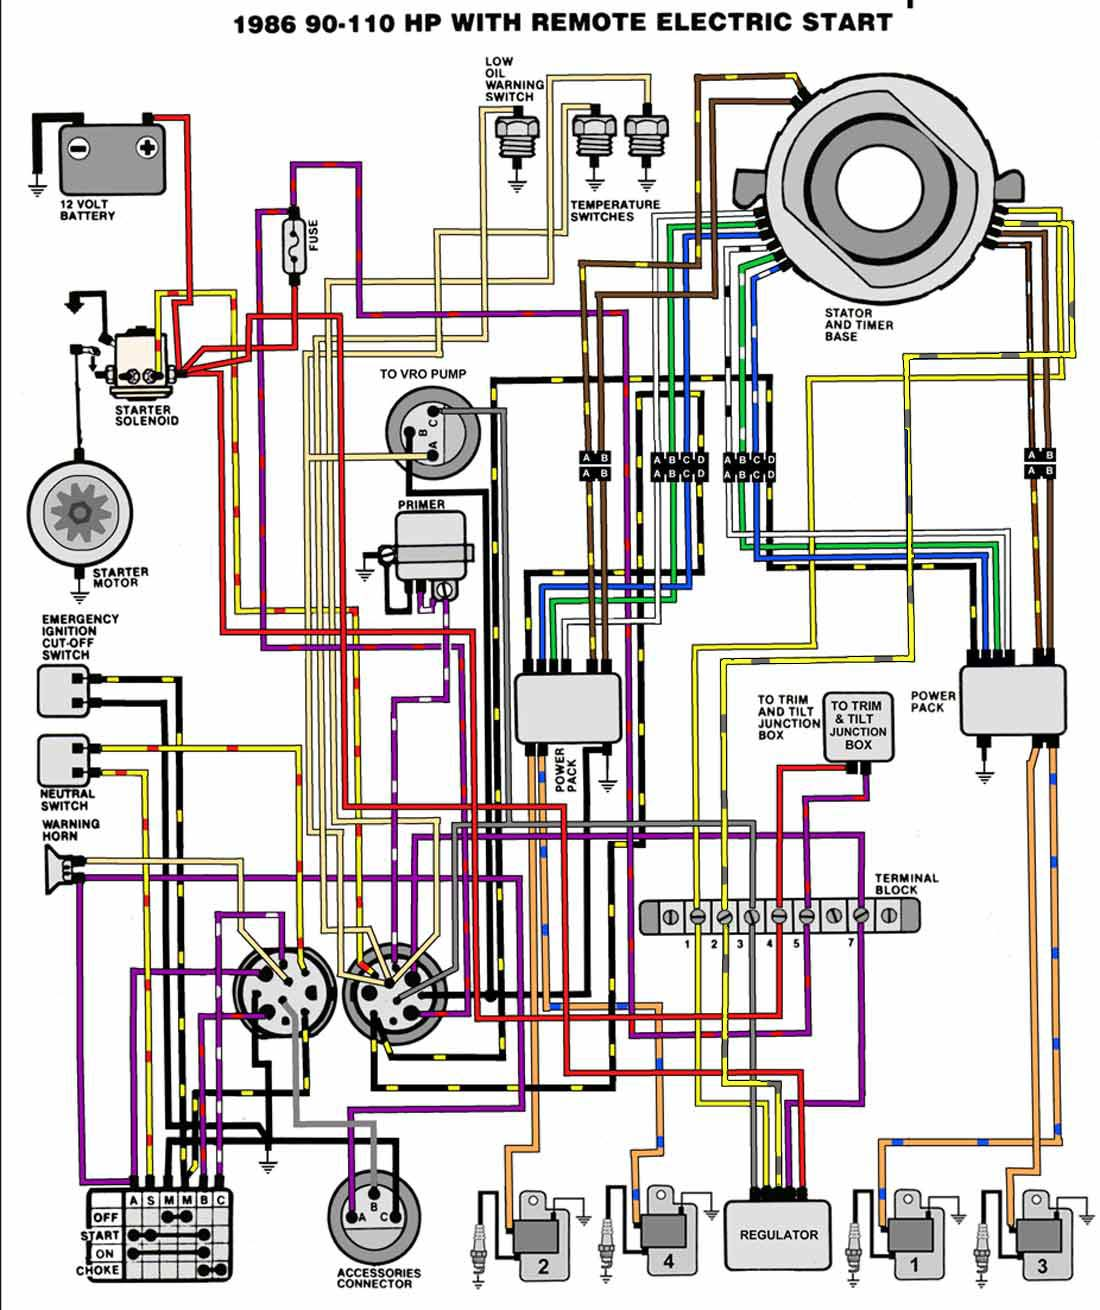 1986_90_115?resize=680%2C810 wiring diagram ignition switch sea ray wiring wiring diagrams  at nearapp.co